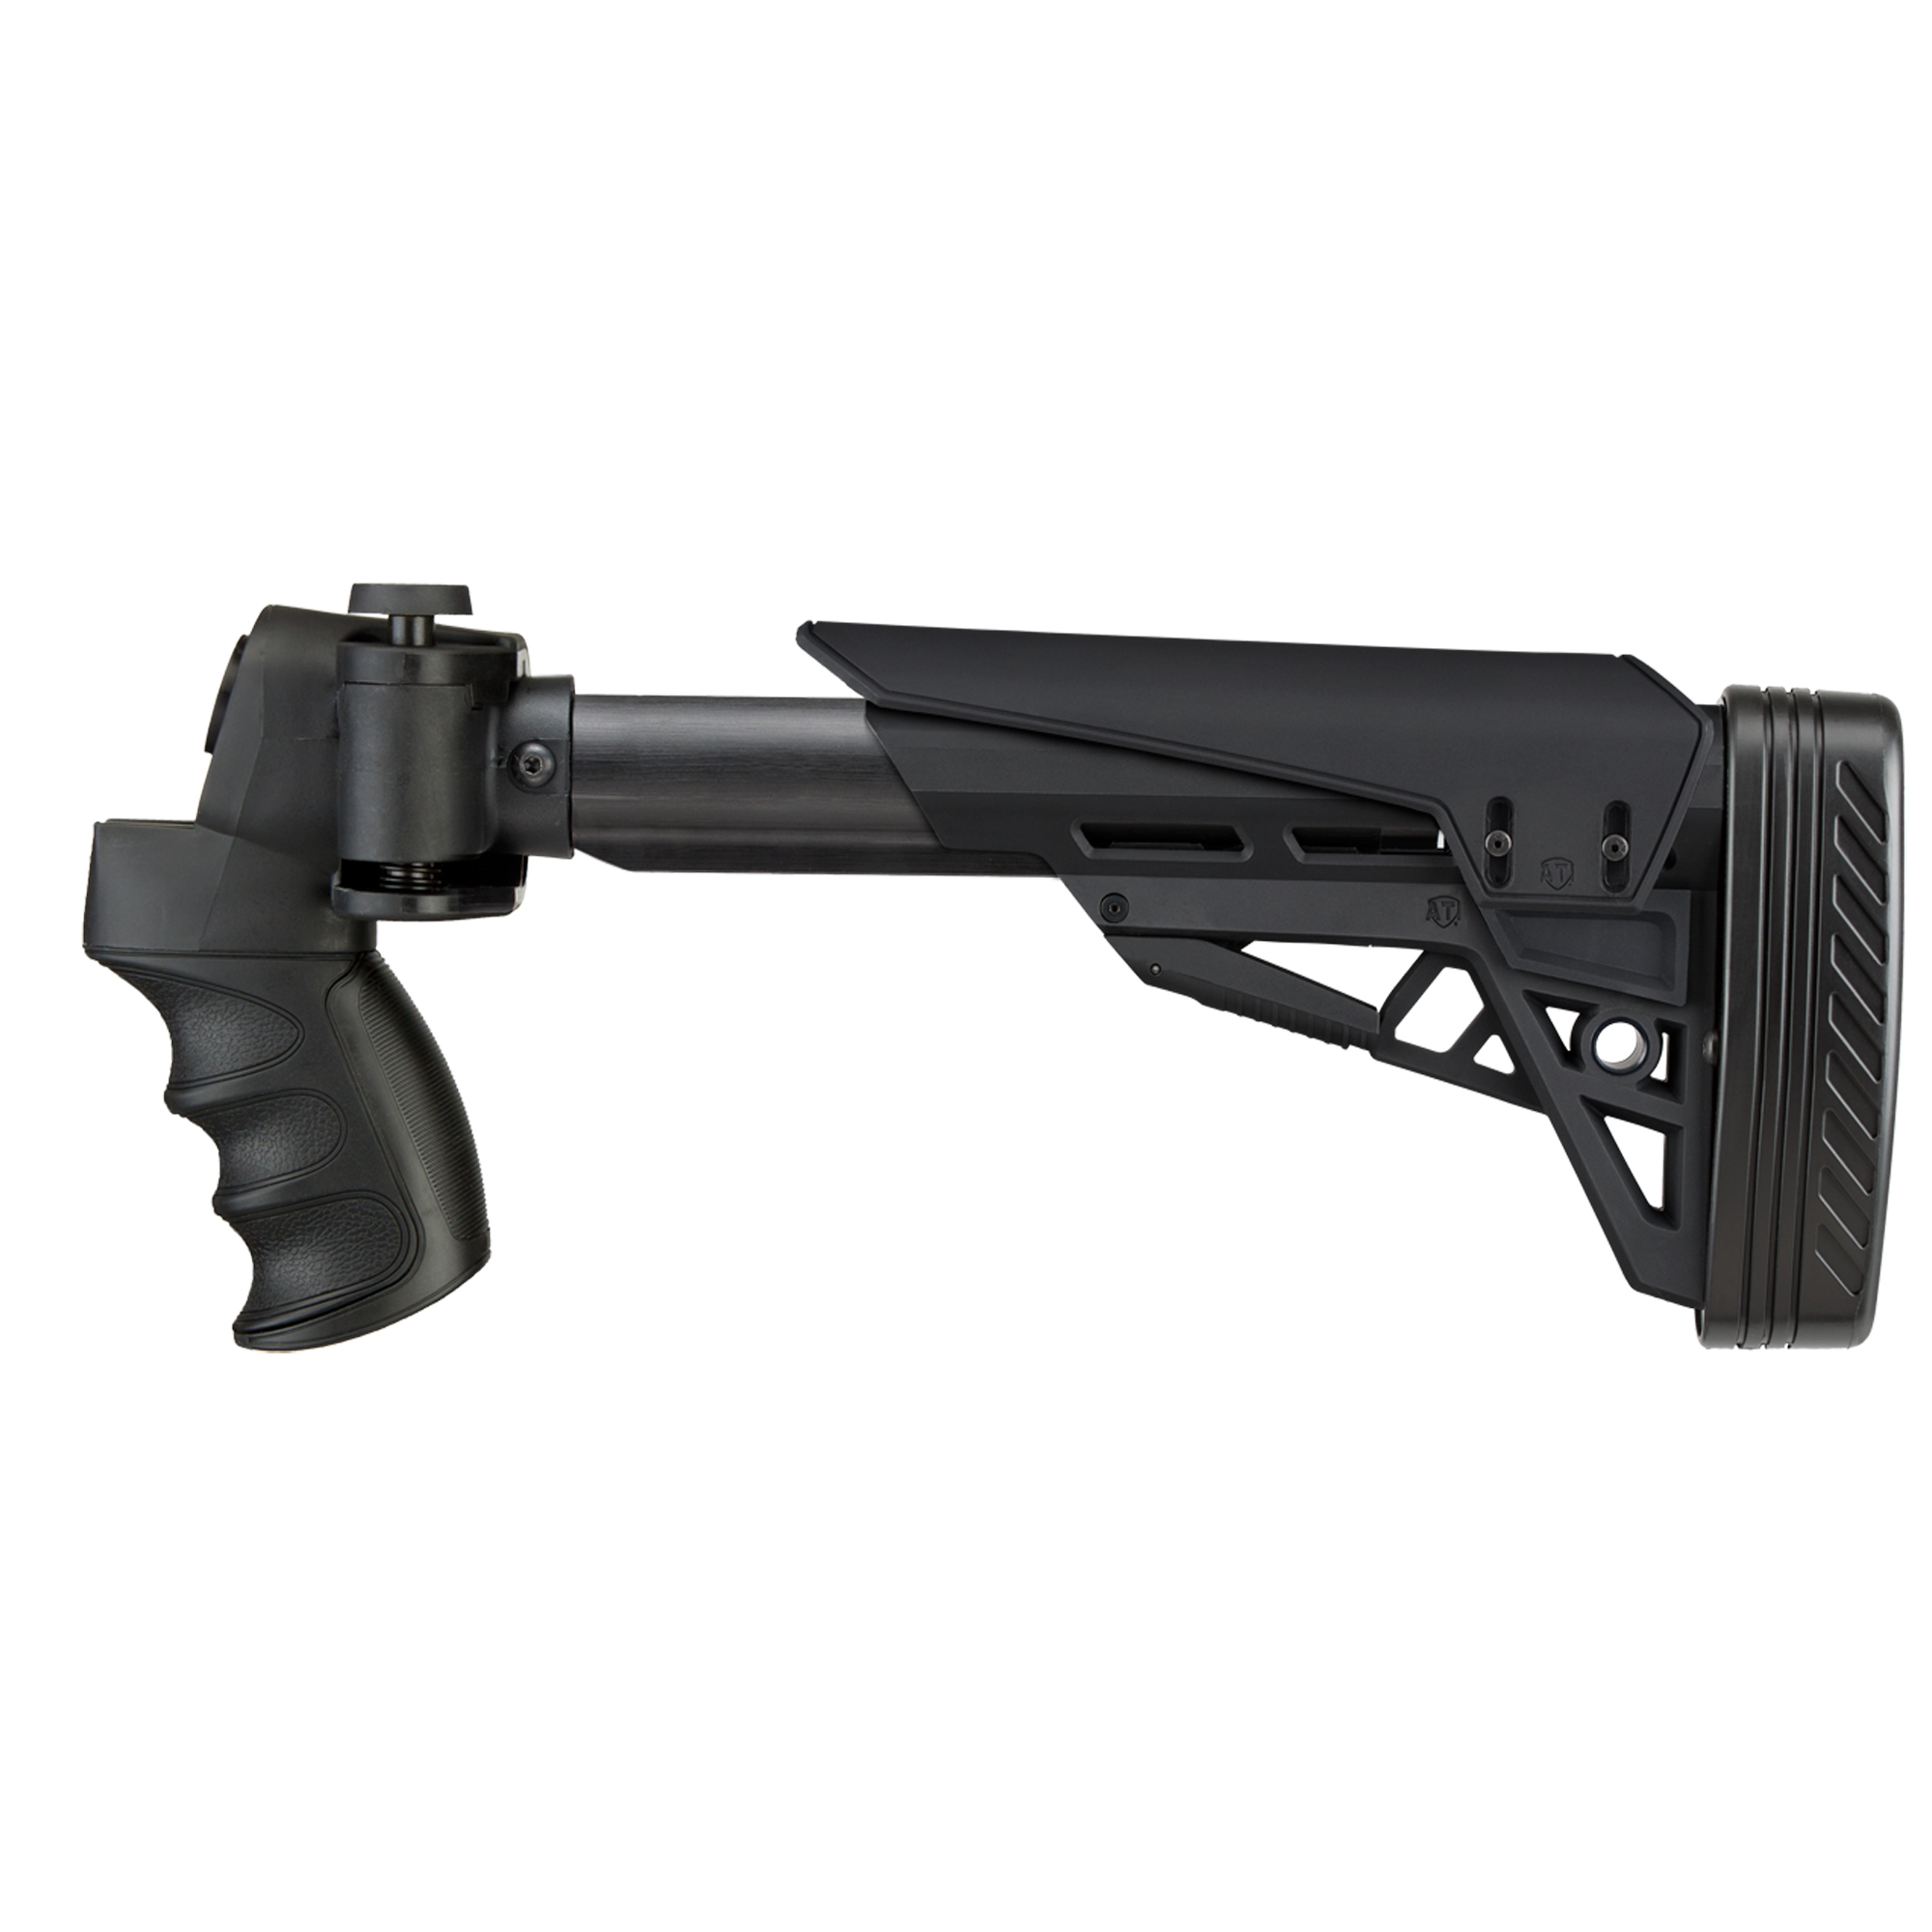 """The Advanced Technology Int. Strike force Side-Folding Shotgun Stock fits Maverick 88 12ga & 20ga (proud fit)"""" Mossberg 500/535/590/835 12ga & 20ga (proud fit)"""" Remington 870 12ga & 20ga (proud fit)"""" American Tactical MB3"""" and Winchester 1200/1300 Pump-Shotguns 12ga & 20ga (proud fit). It is a Six-Position Adjustable Side-Folding TactLite Shotgun Stock w/X2 Recoil Reducing Grip & Butt-Pad. The removable/adjustable cheek rest system has an elongated design to fit all users. It also includes a short cheek rest with 1/2"""" of adjustment. Adapters for all supporting models are included along with all mounting hardware for easy installation. It is constructed with DuPont(R) Extreme Reinforced Polymer and is scratchproof and weatherproof. Made in USA."""